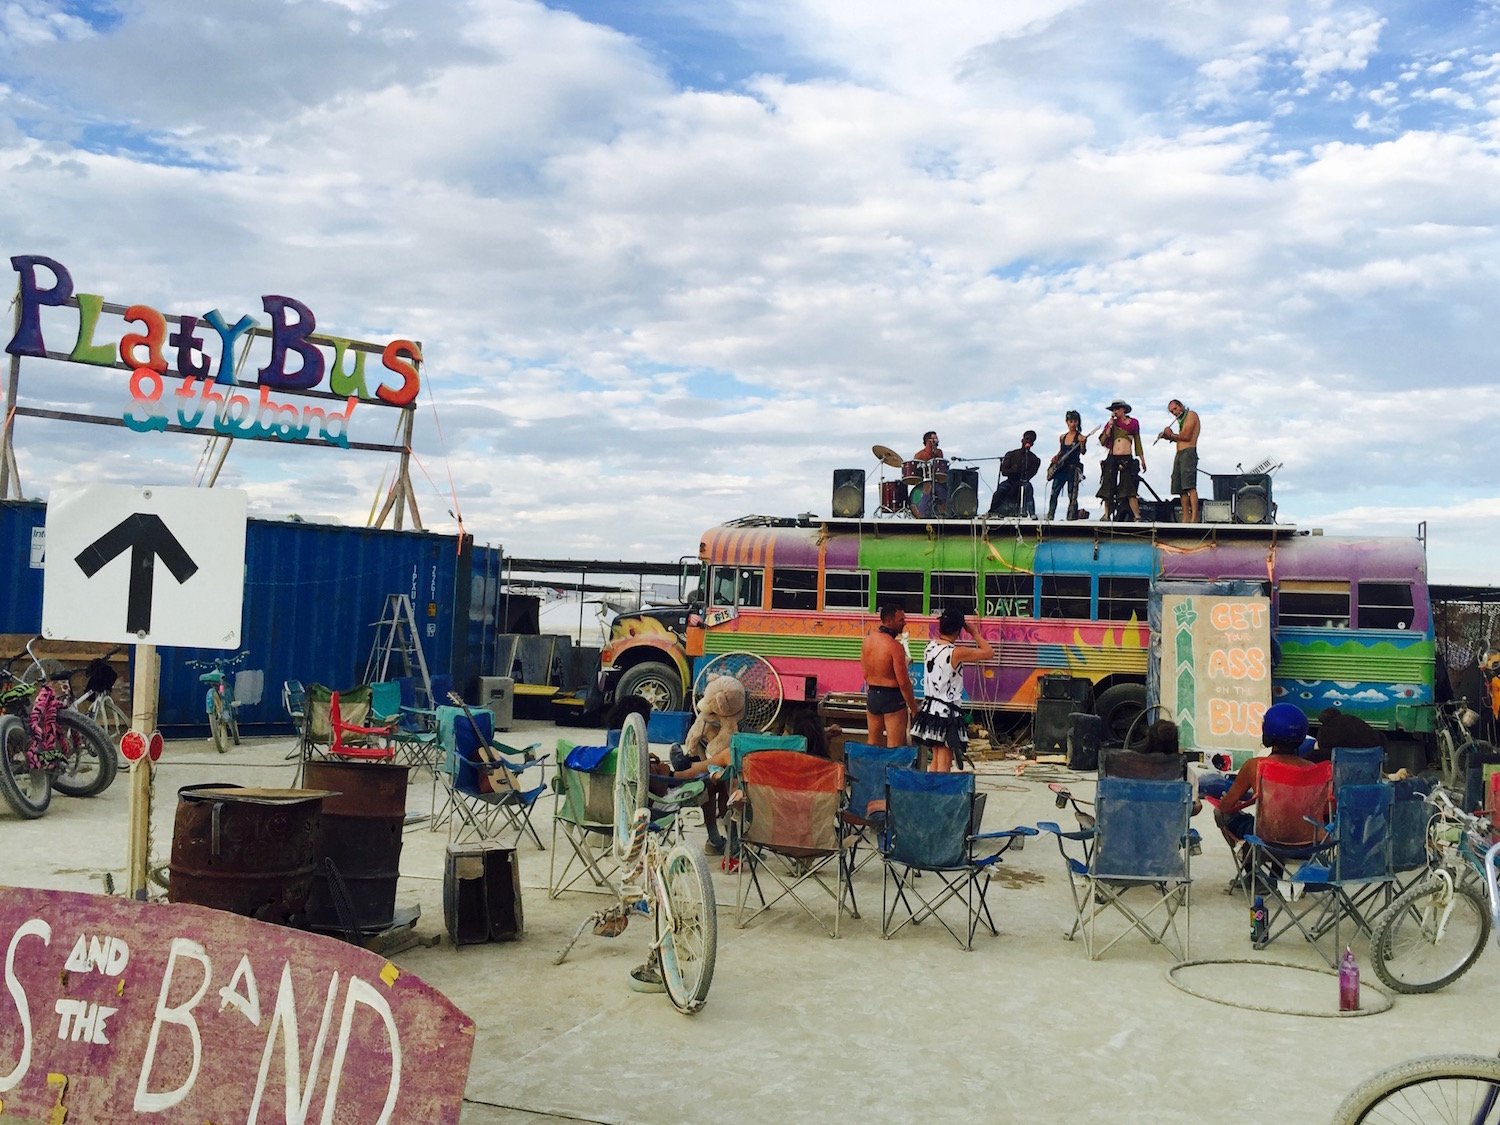 Platy Bus & The Band rocking on top of the bus. Burning Man